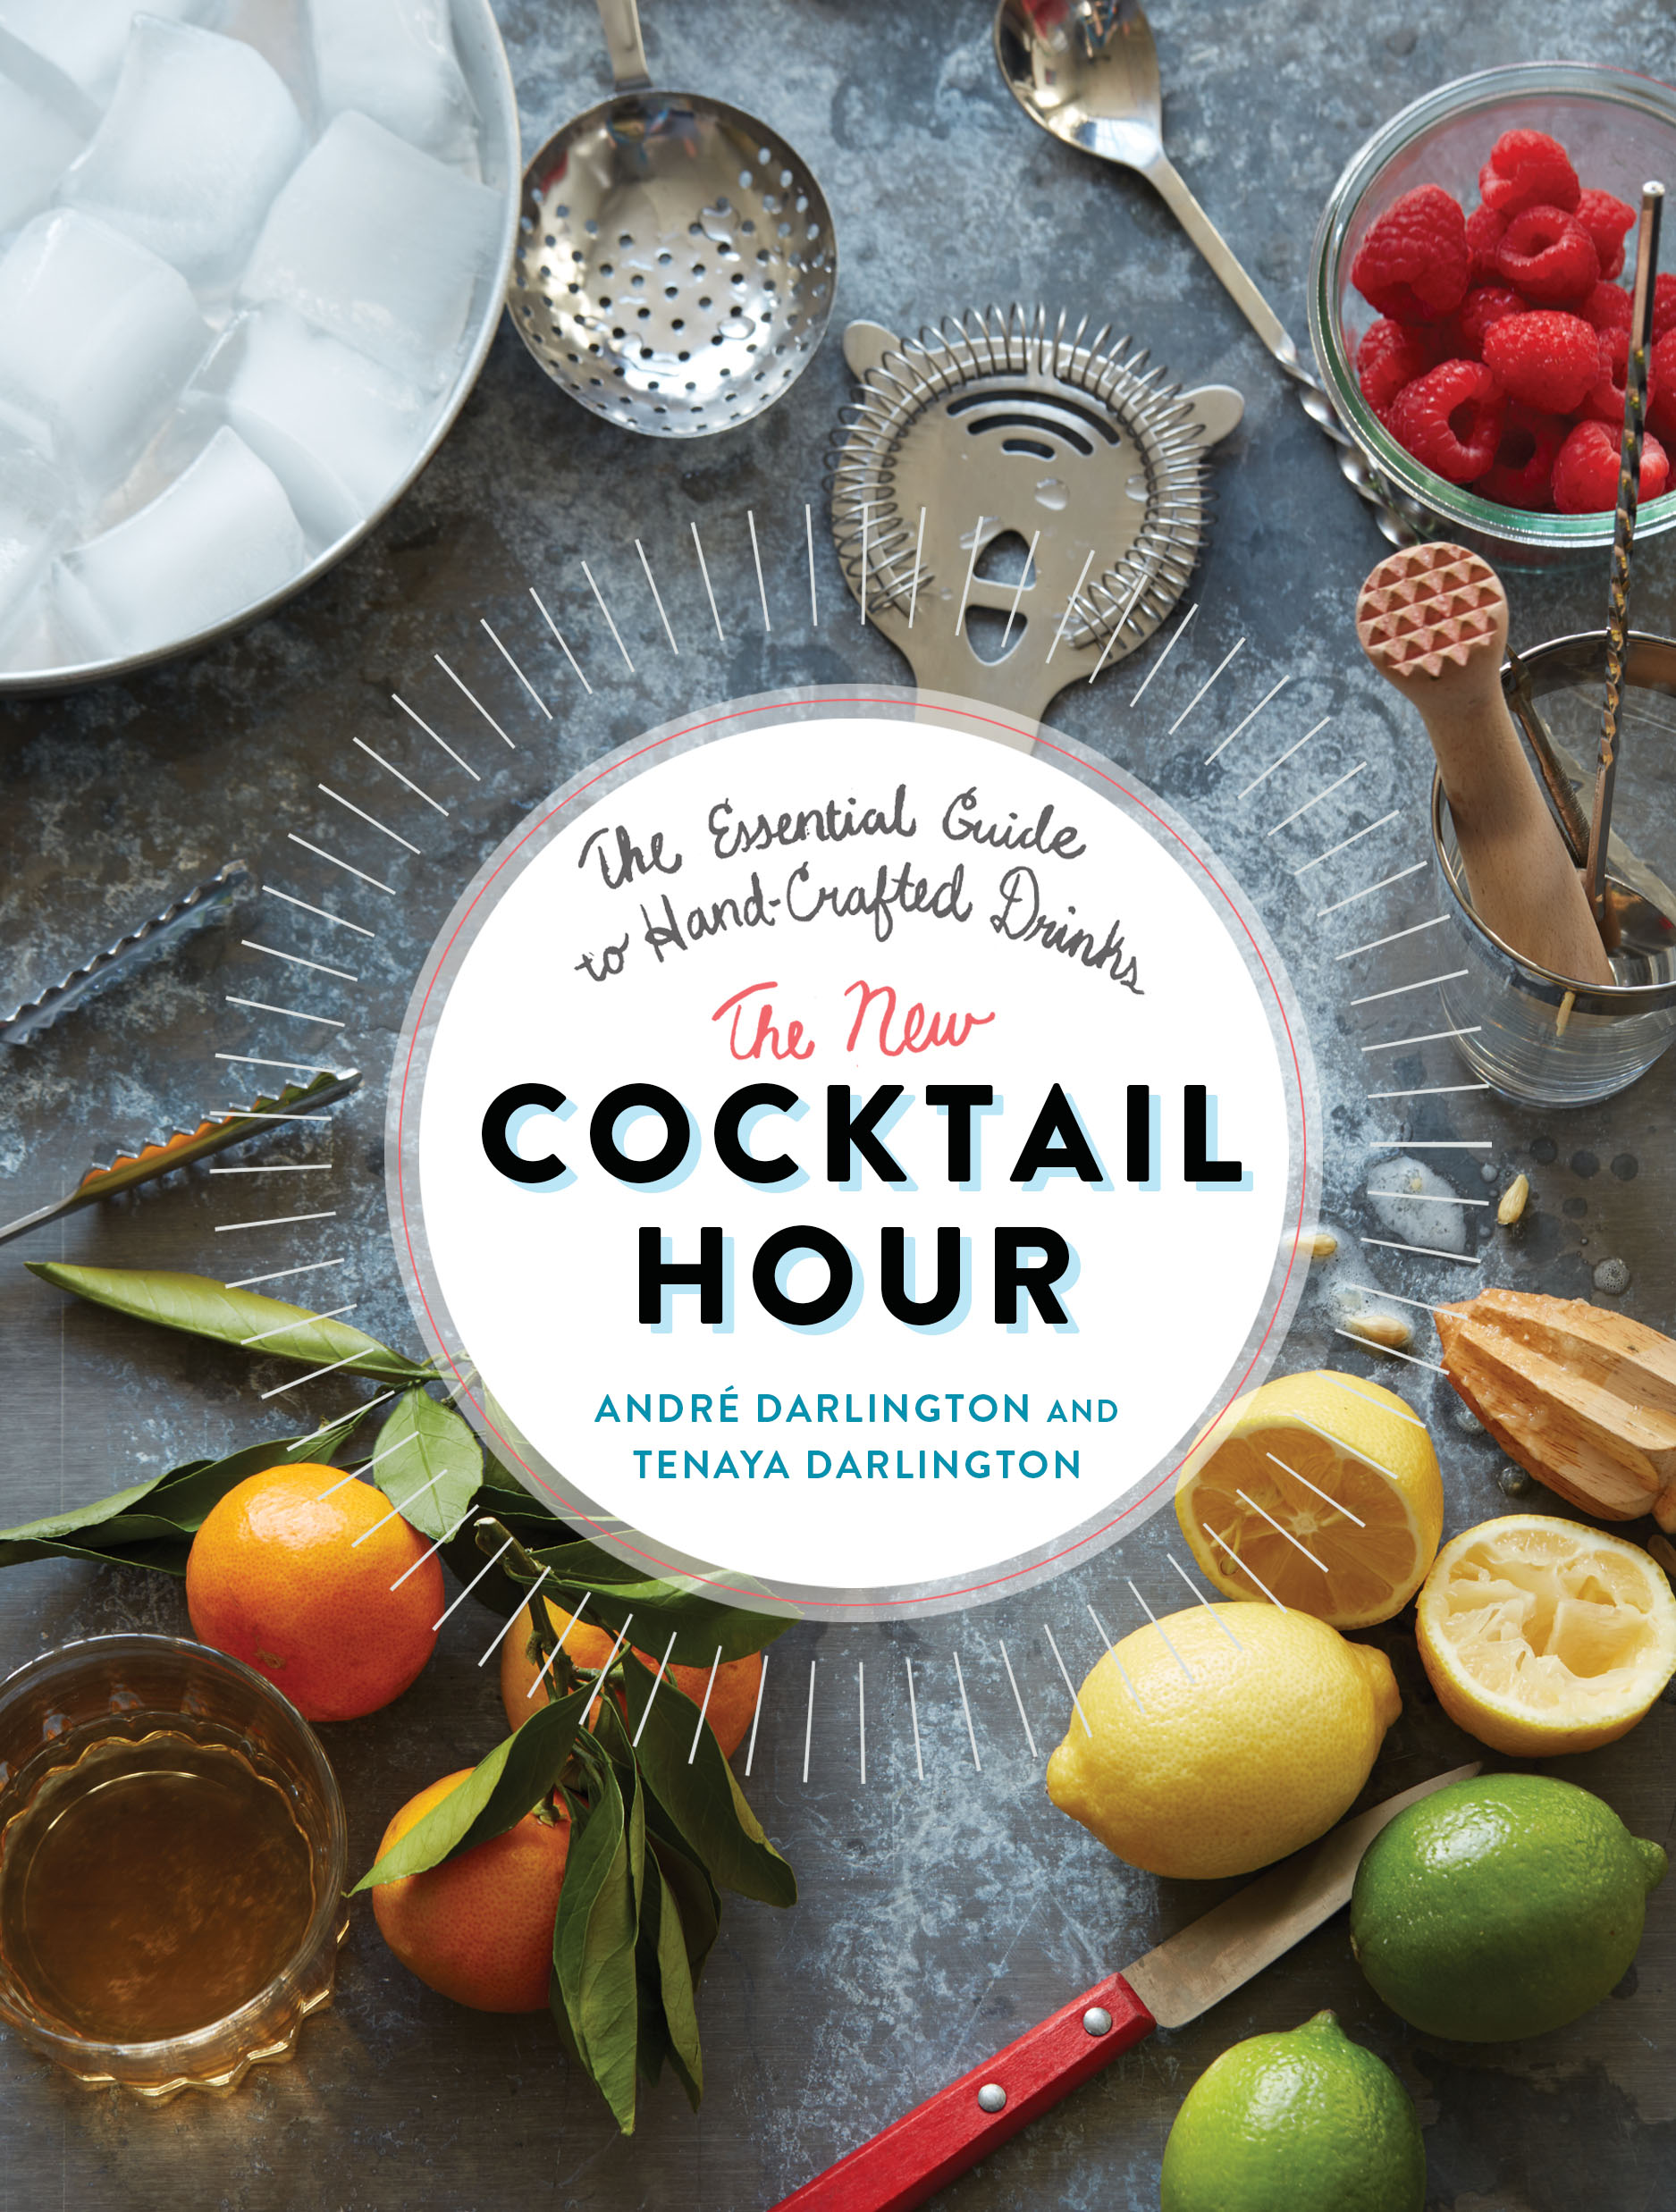 Cover Image.The New Cocktail Hour.jpg